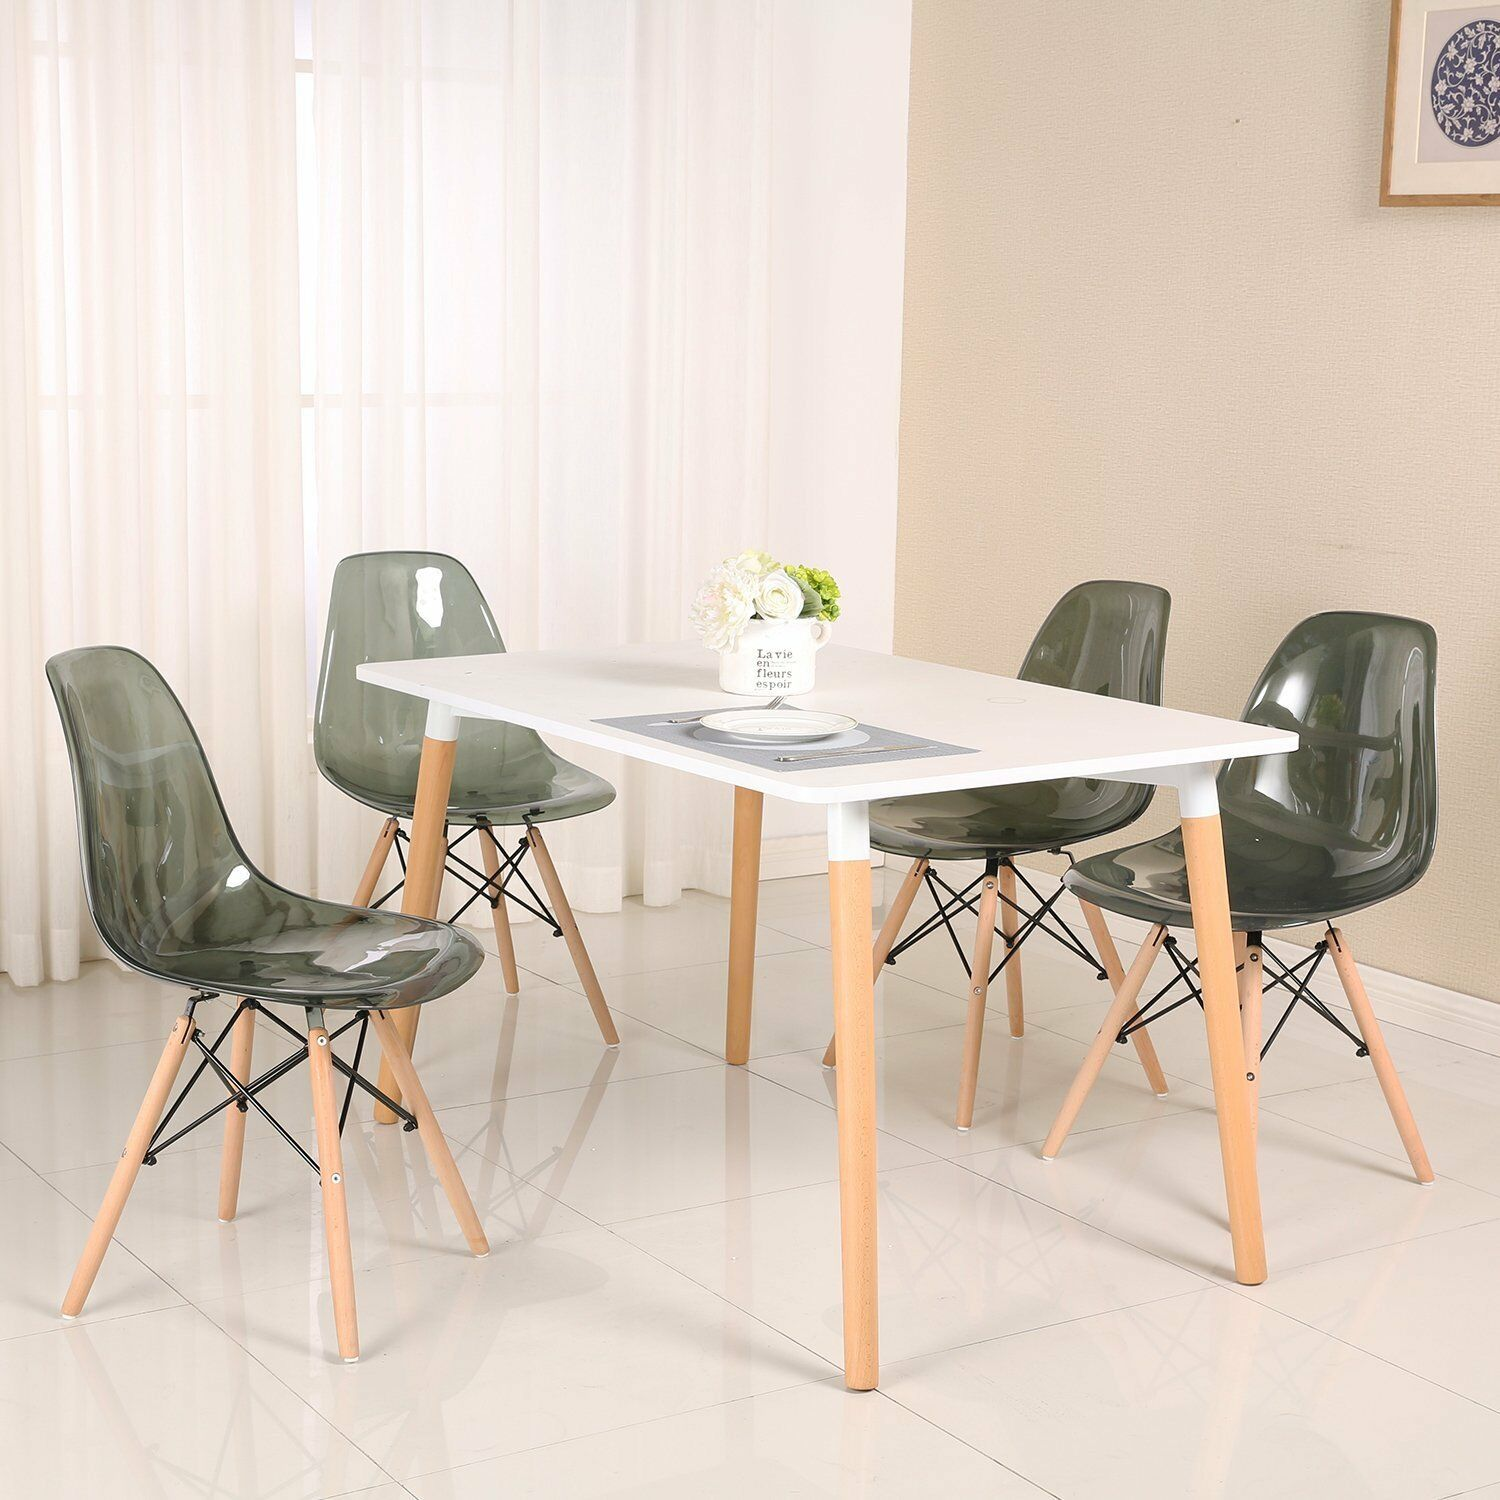 Modern Kitchen Chairs Details About Modern Plastic Dining Chair Living Room Chair Kitchen Chair Transparent Clear 4